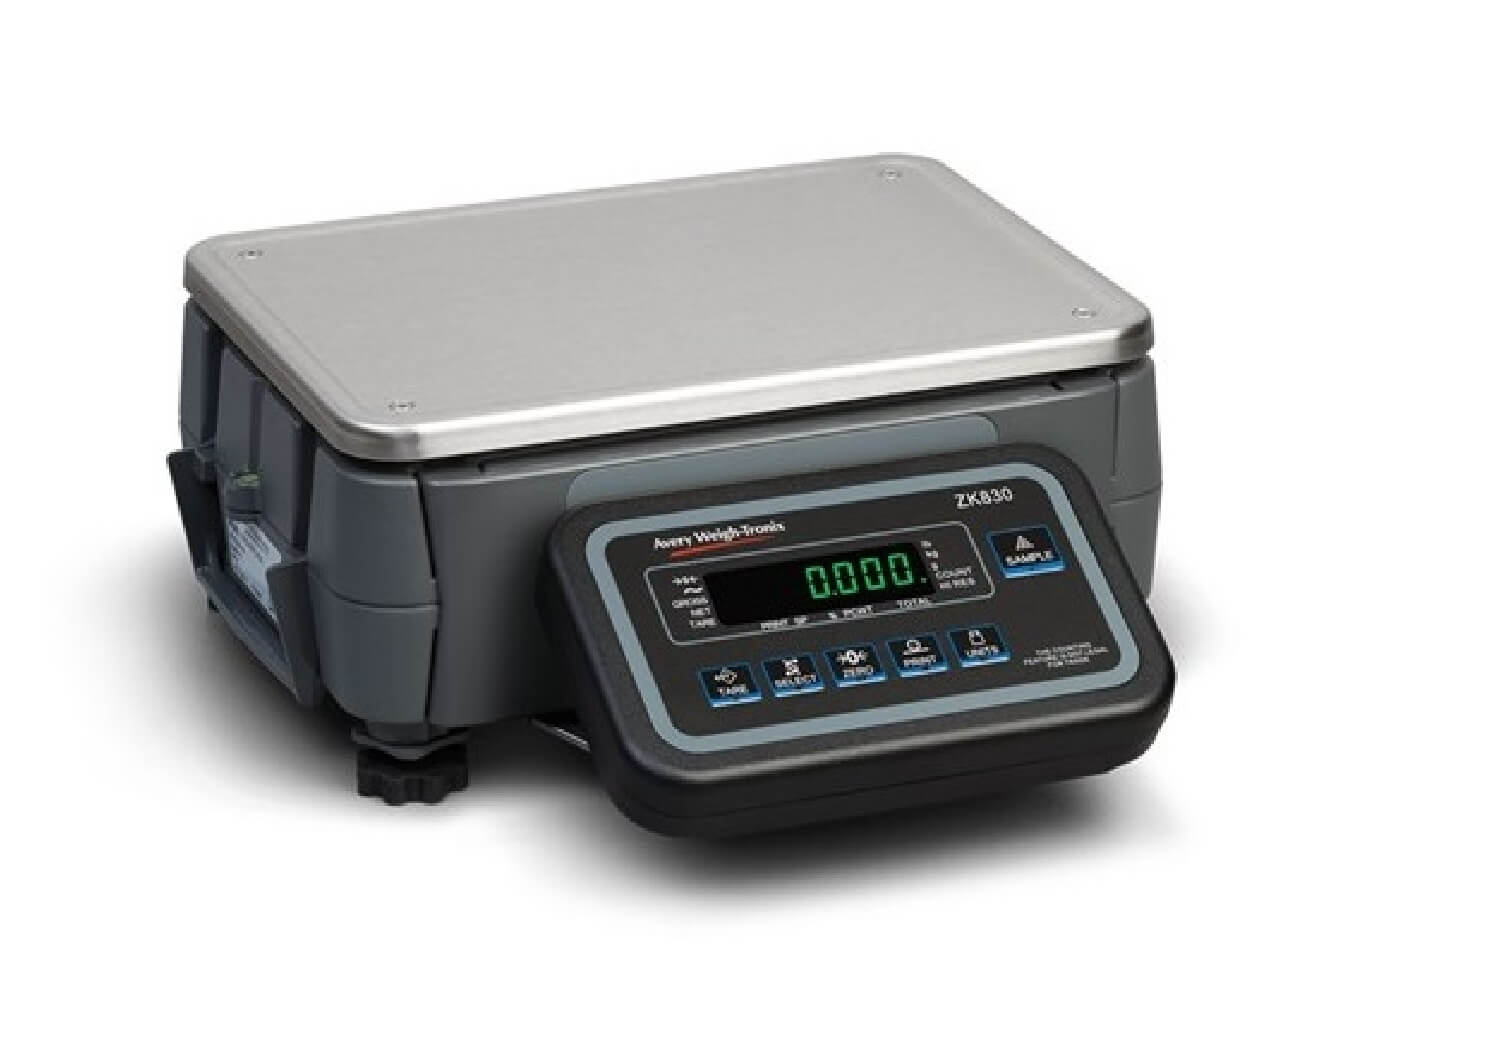 Conveyor scales, printers and scanners, and balance scales